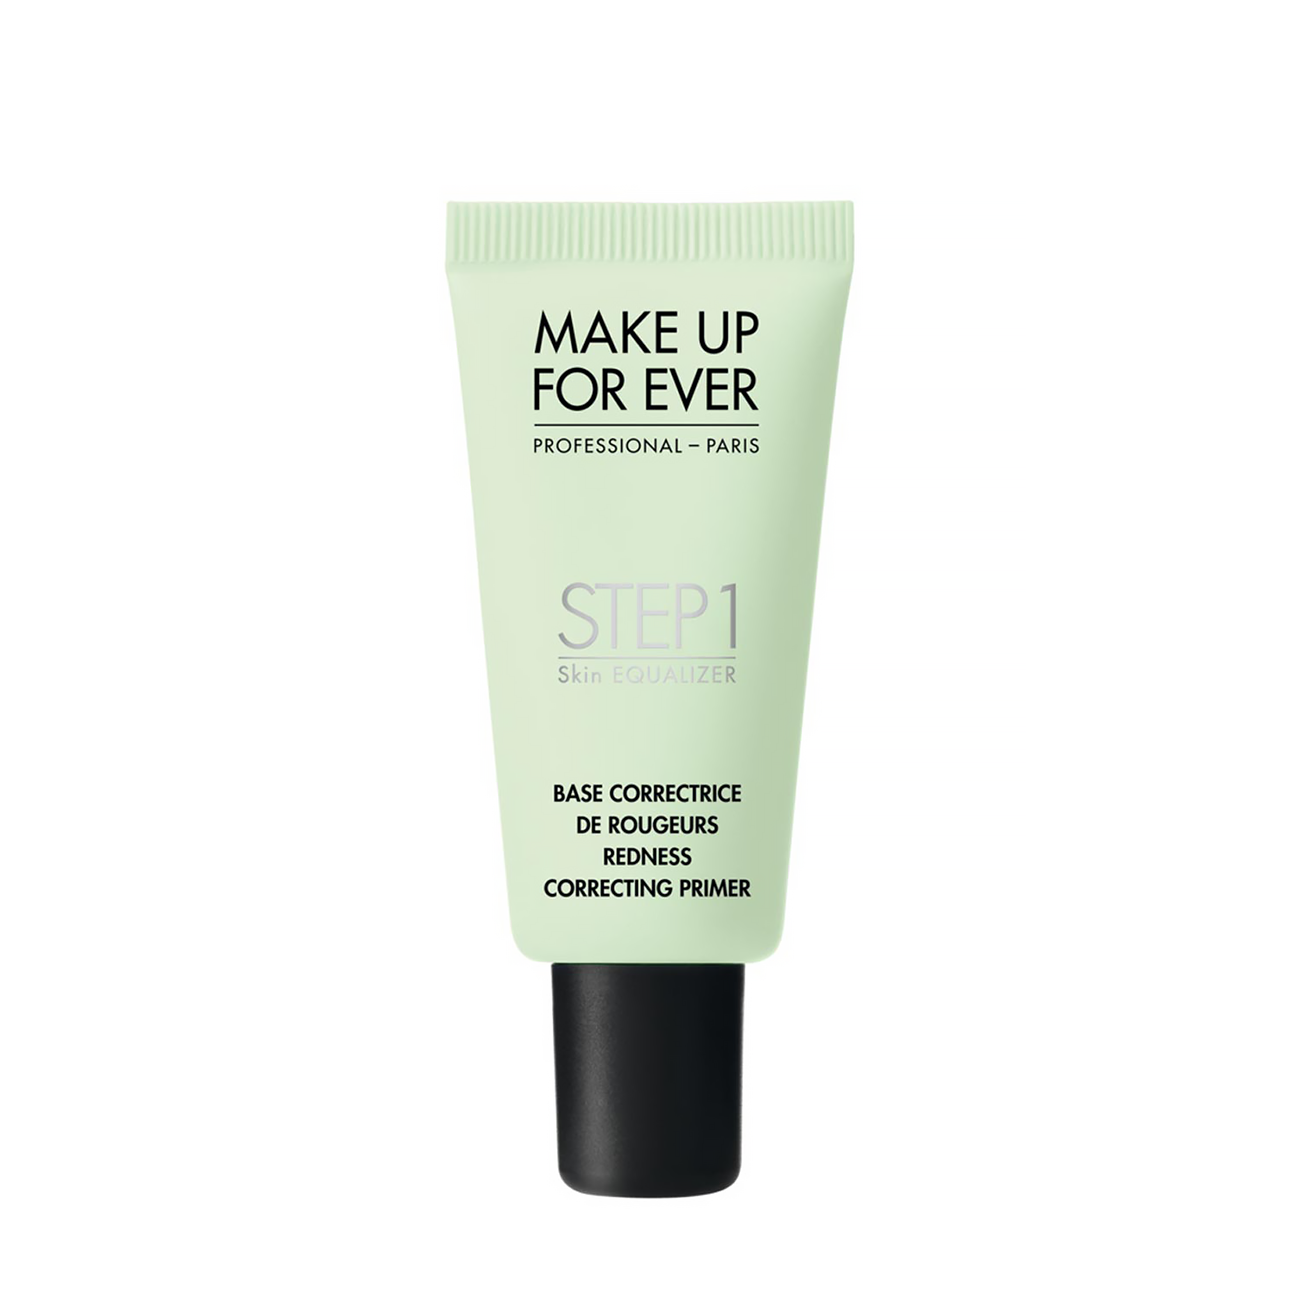 Step1 Skin Equalizer 15ml Make Up For Ever imagine 2021 bestvalue.eu